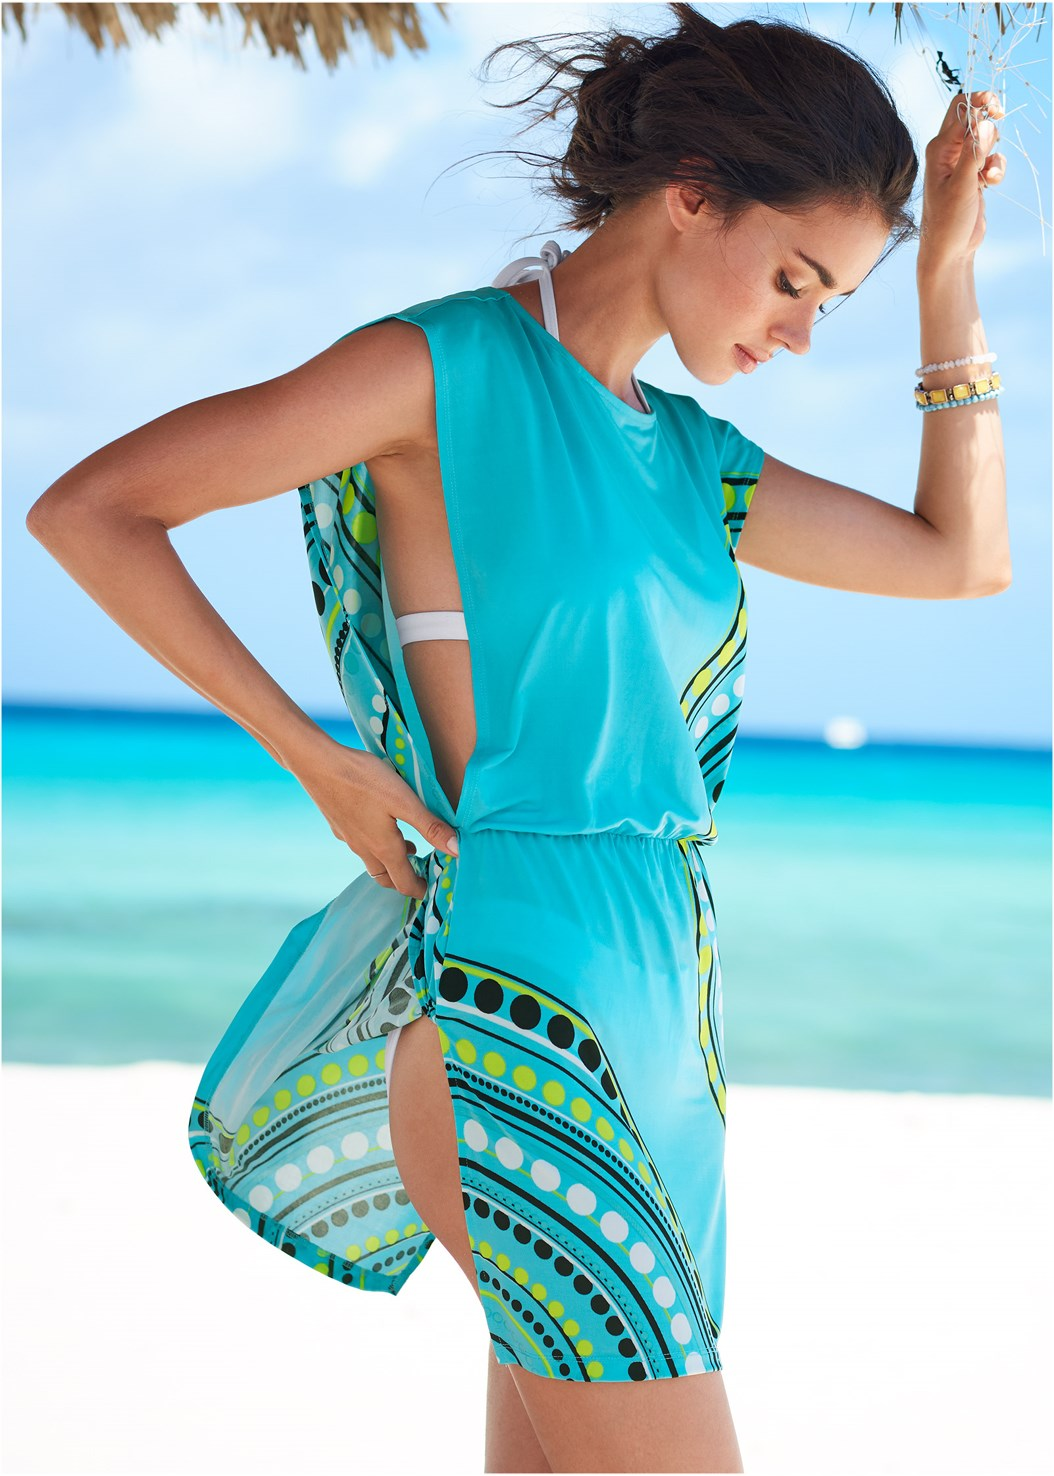 Blousant Cover-Up Dress,Enhancer Push Up Ring Halter Triangle Top ,Scoop Front Classic Bikini Bottom